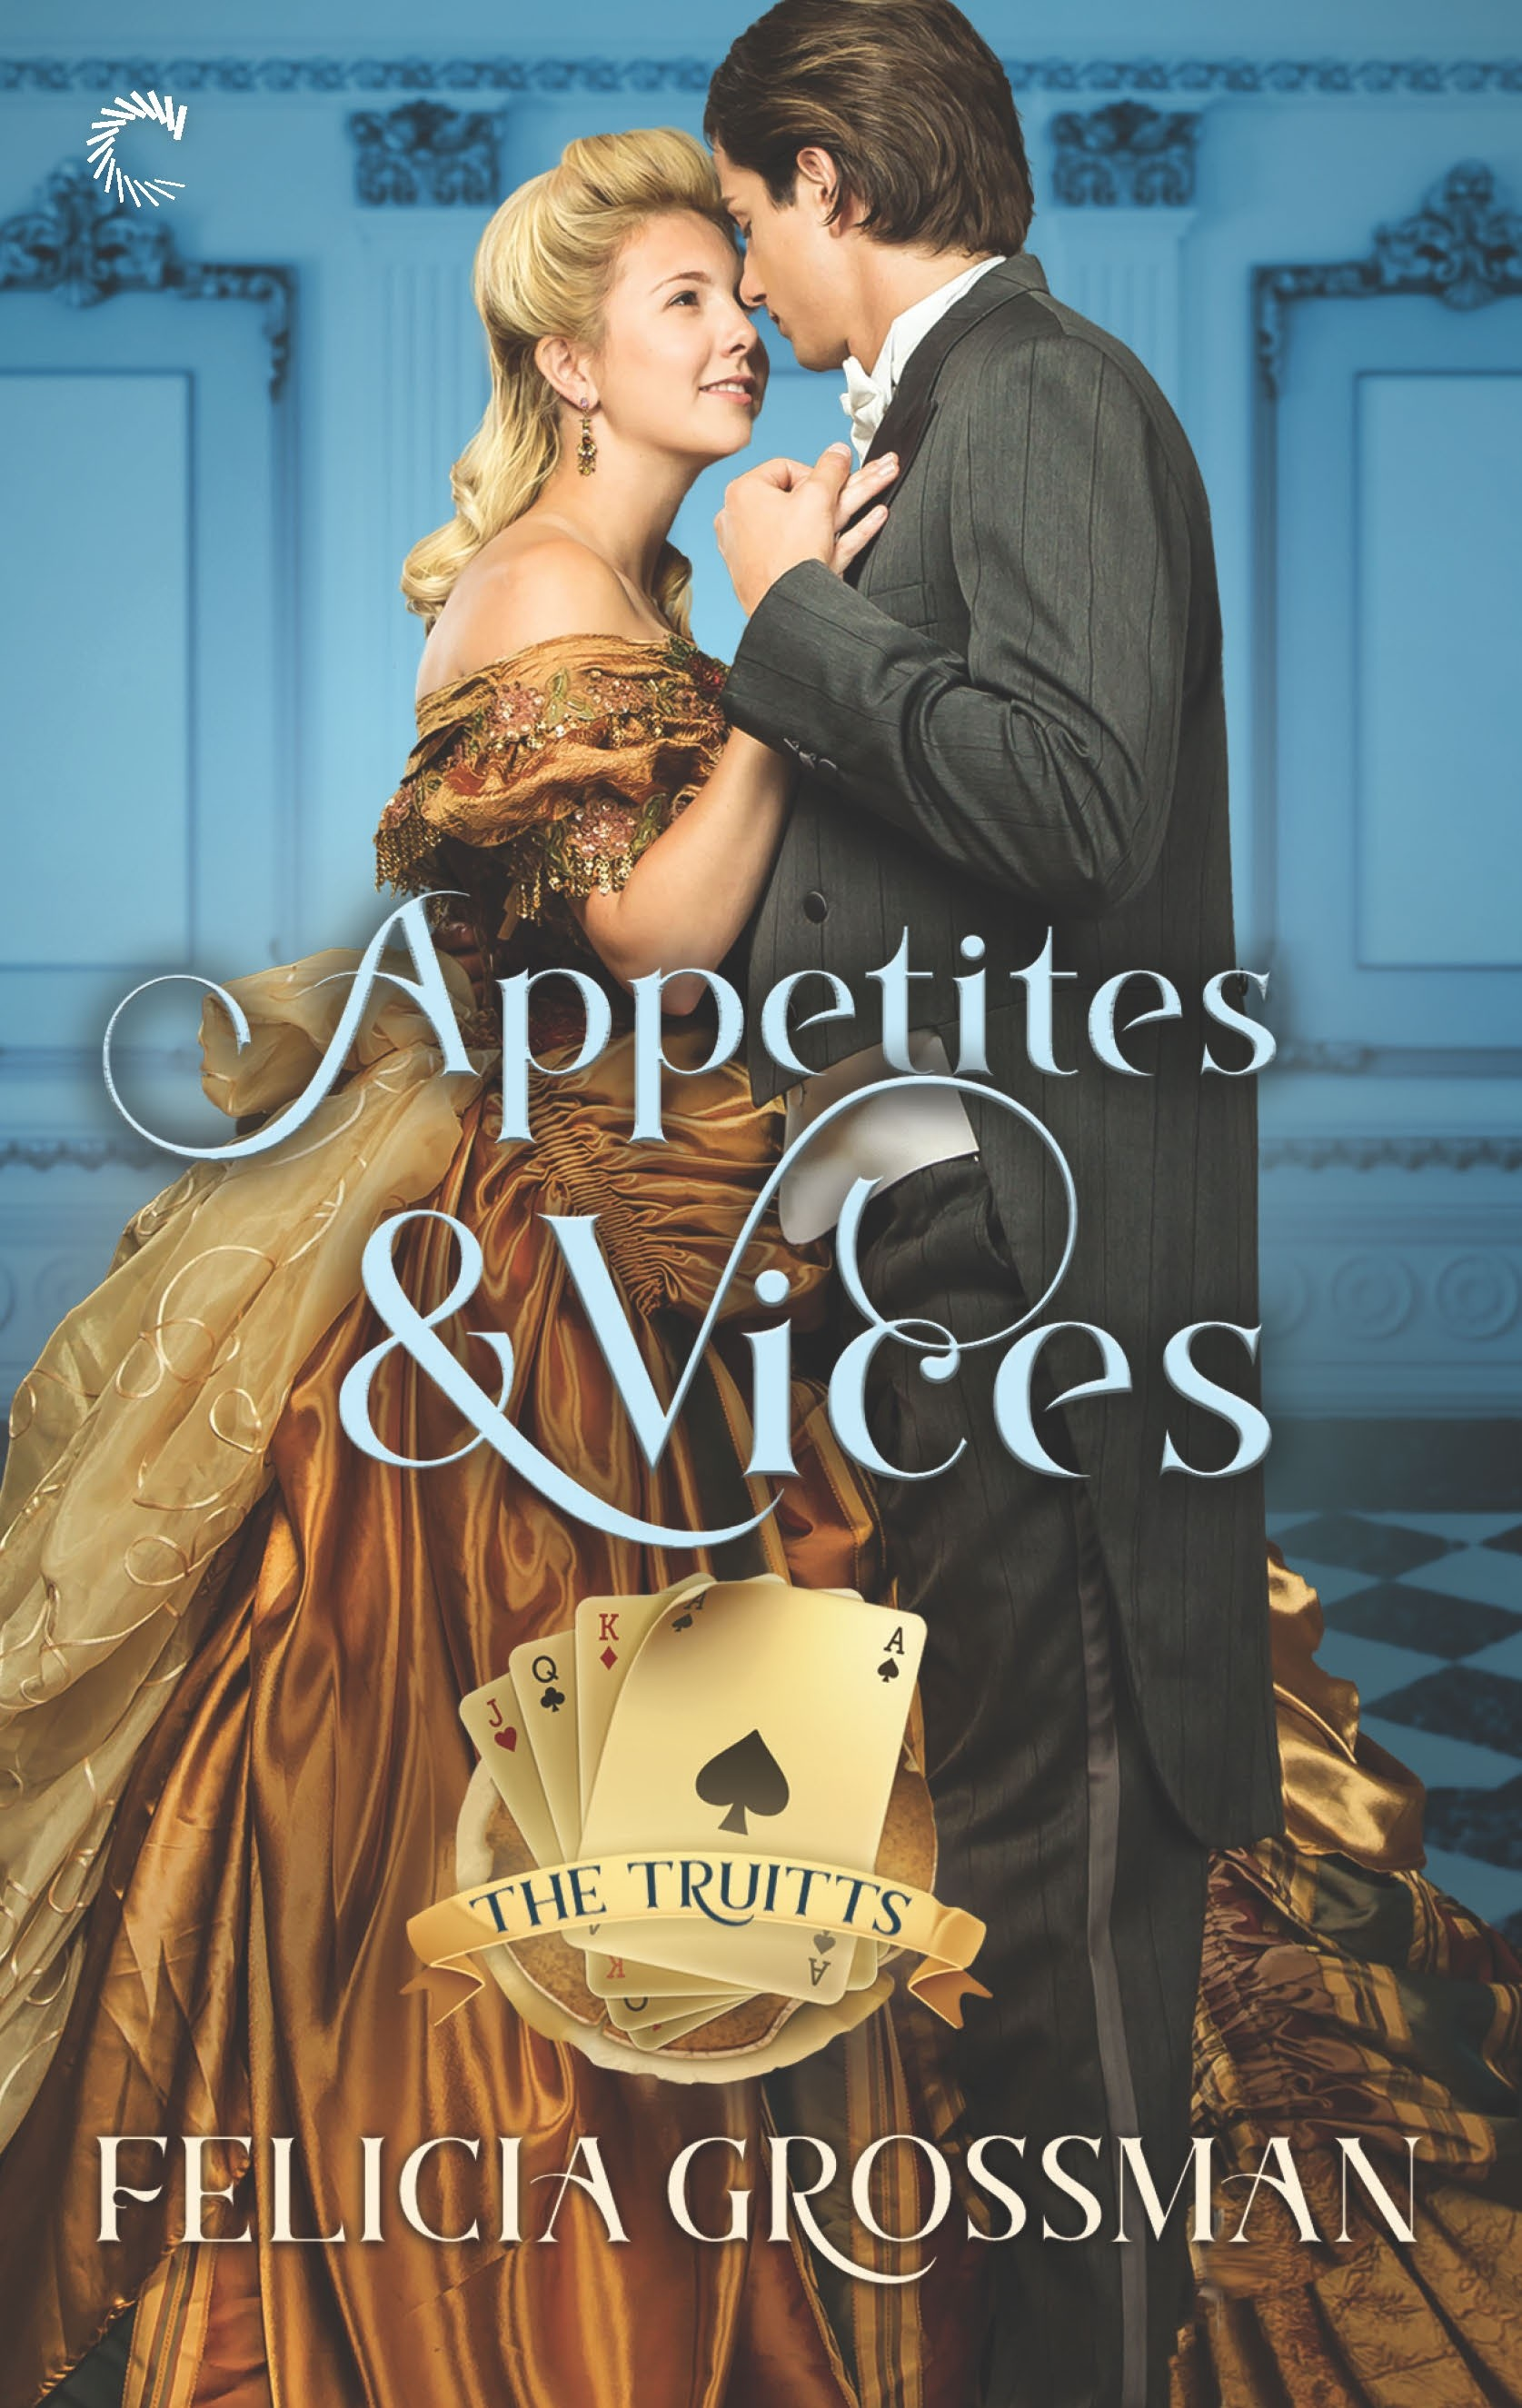 Appetites & Vices A Jewish historical romance